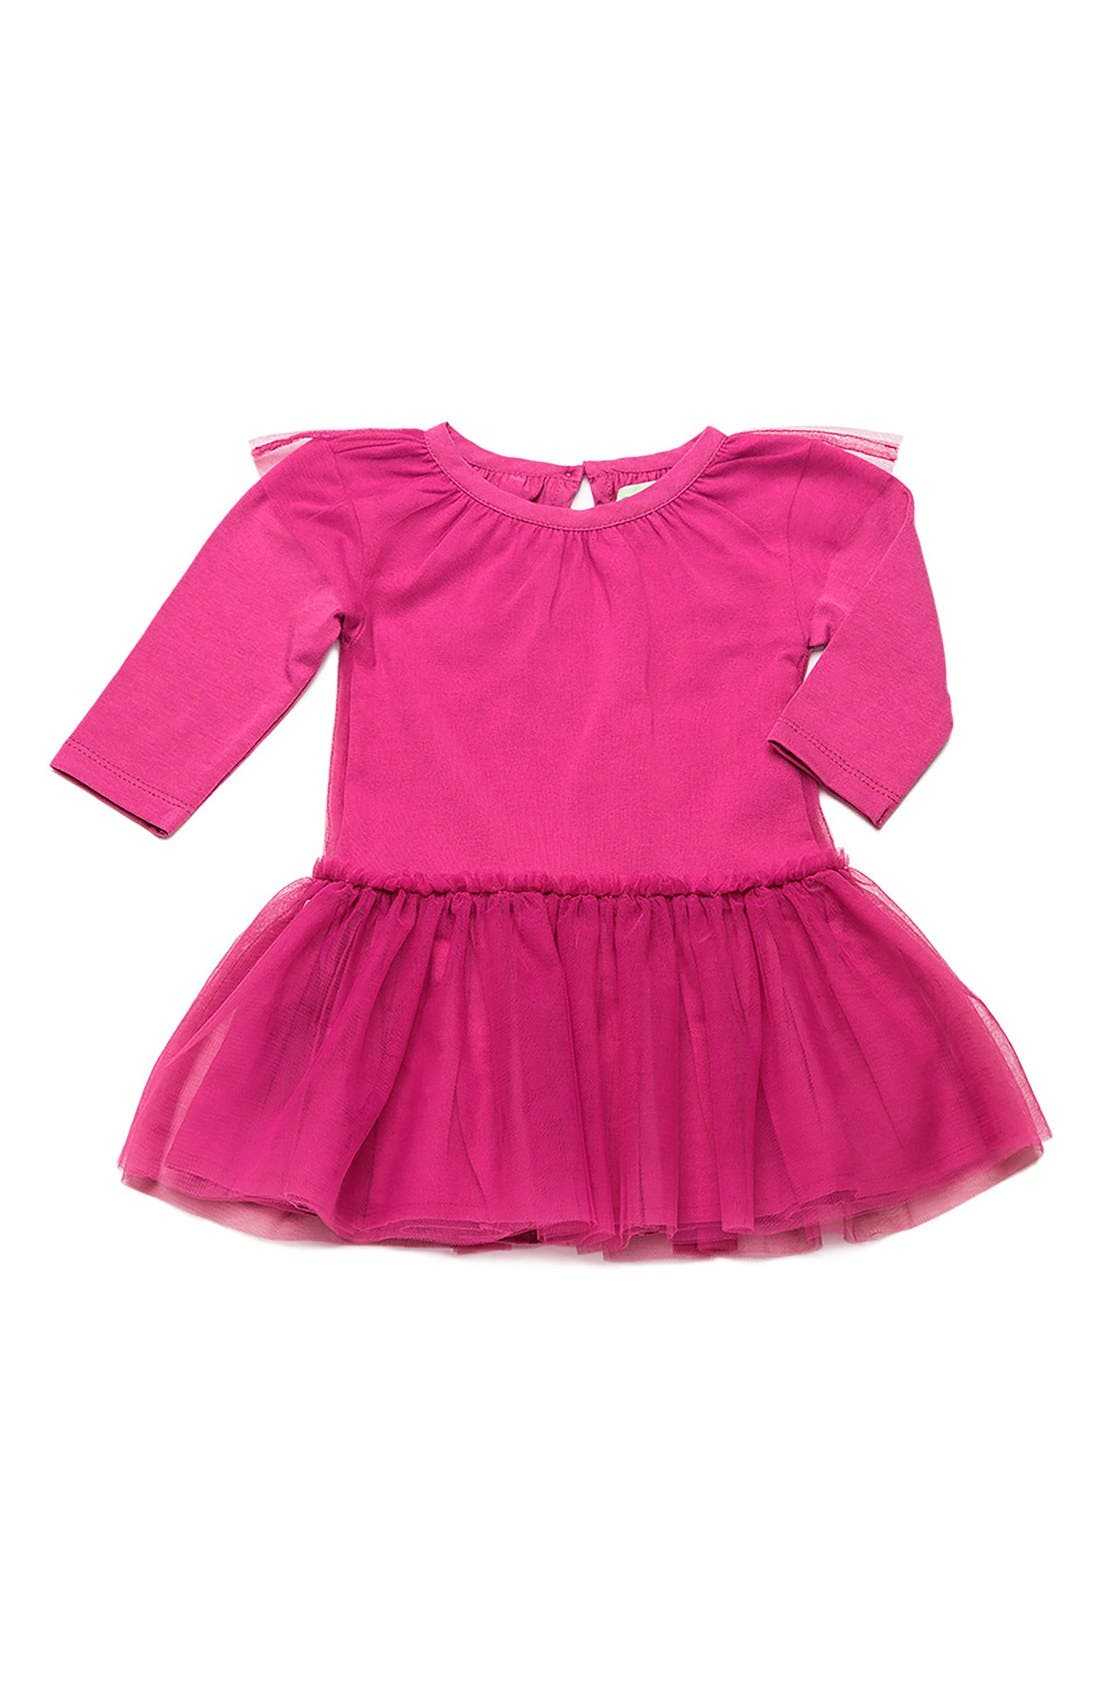 Main Image - Monica + Andy Little Belle Tulle Skirt Dress (Baby Girls)